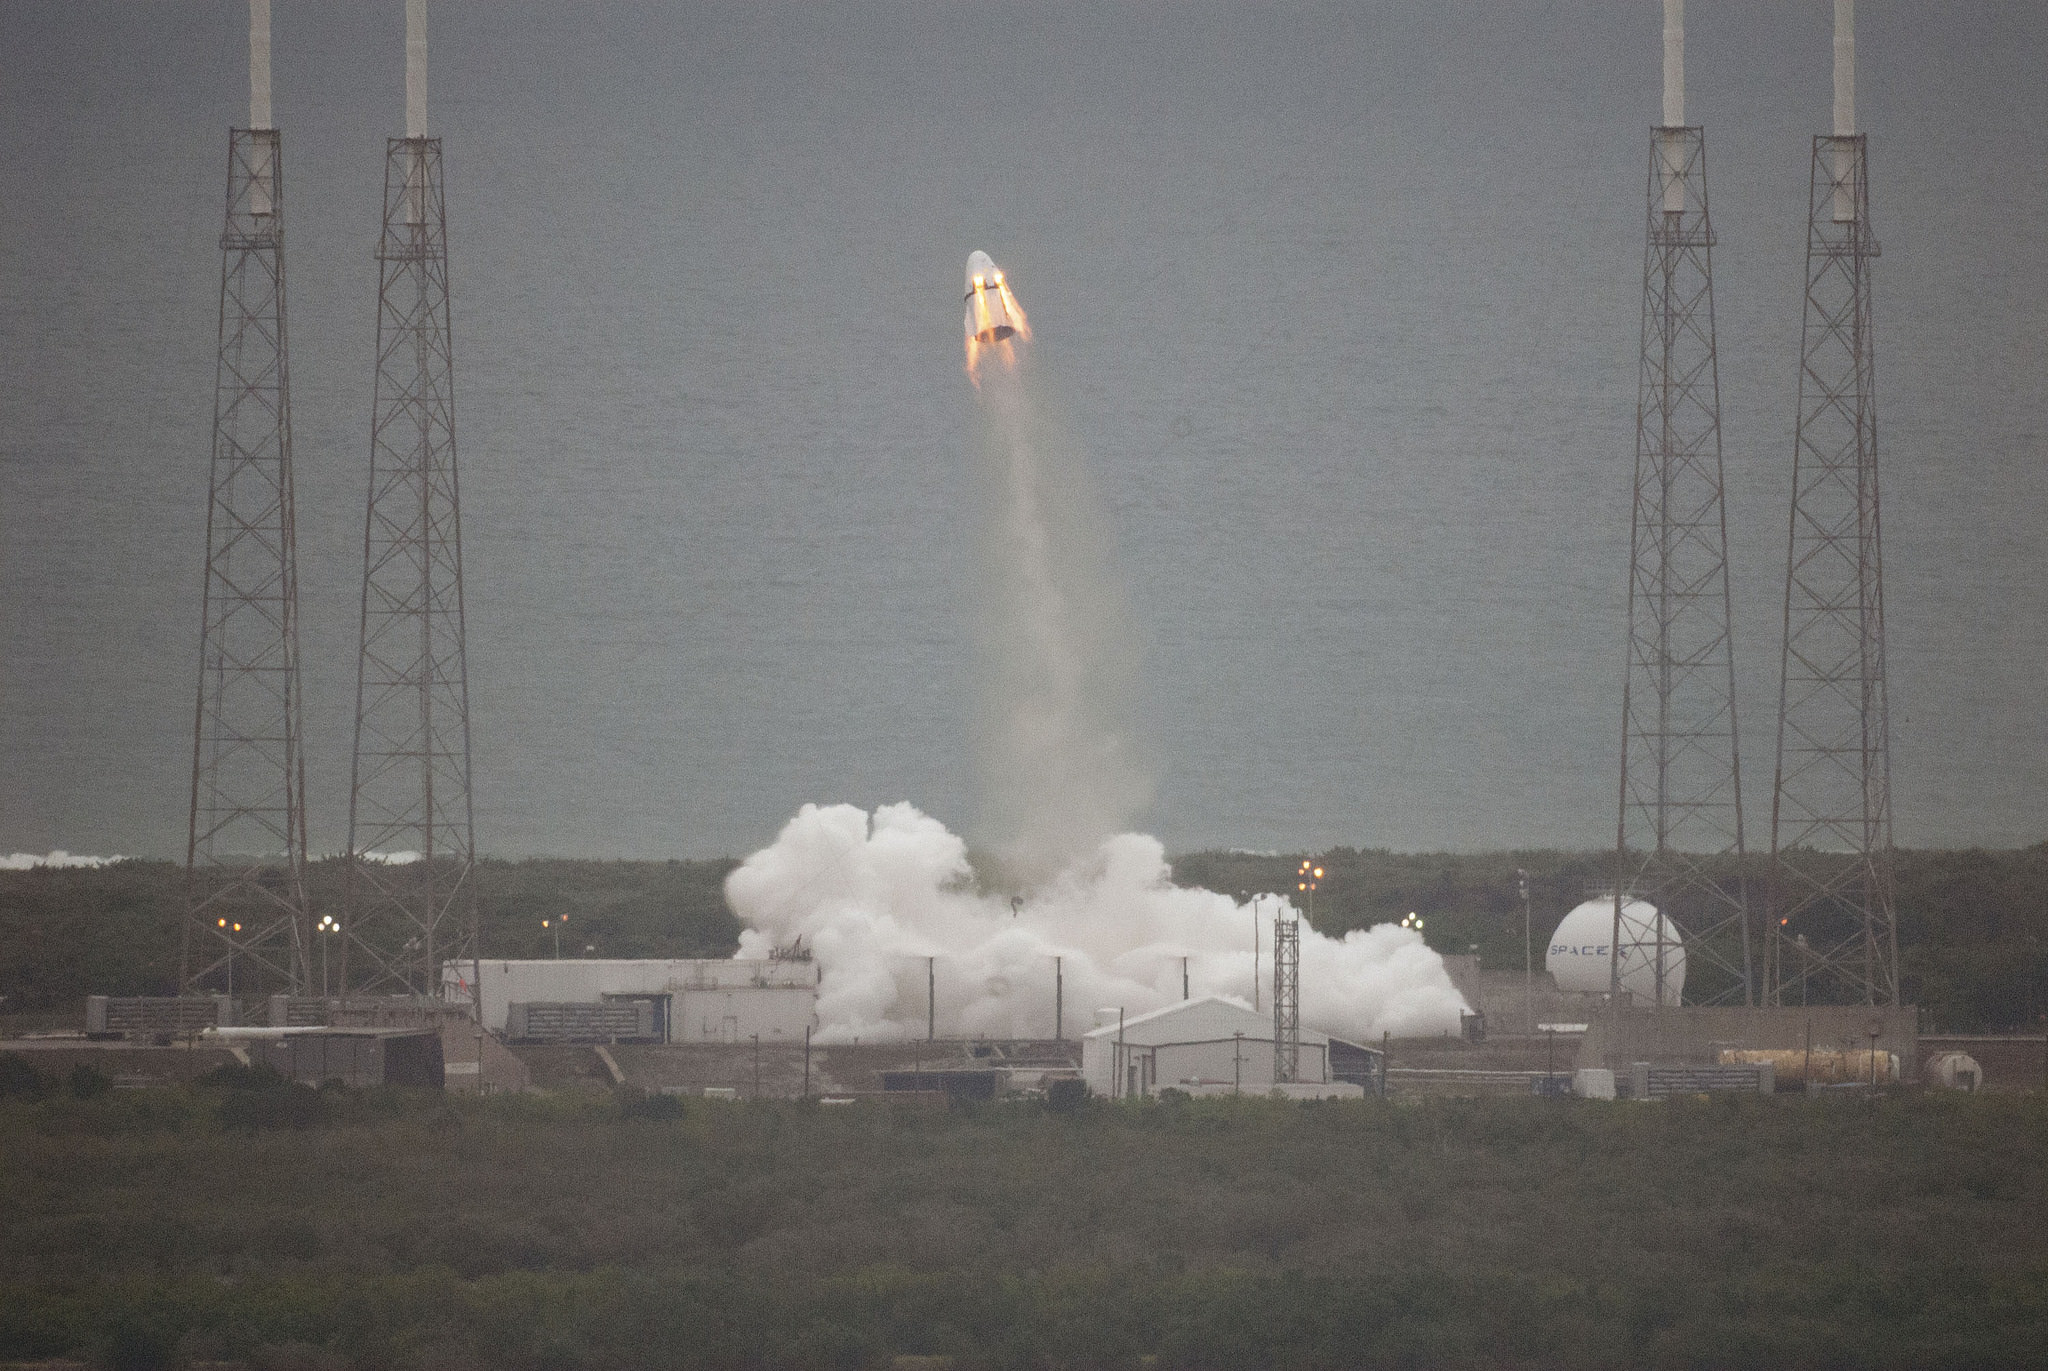 spacex testing schedule - photo #1